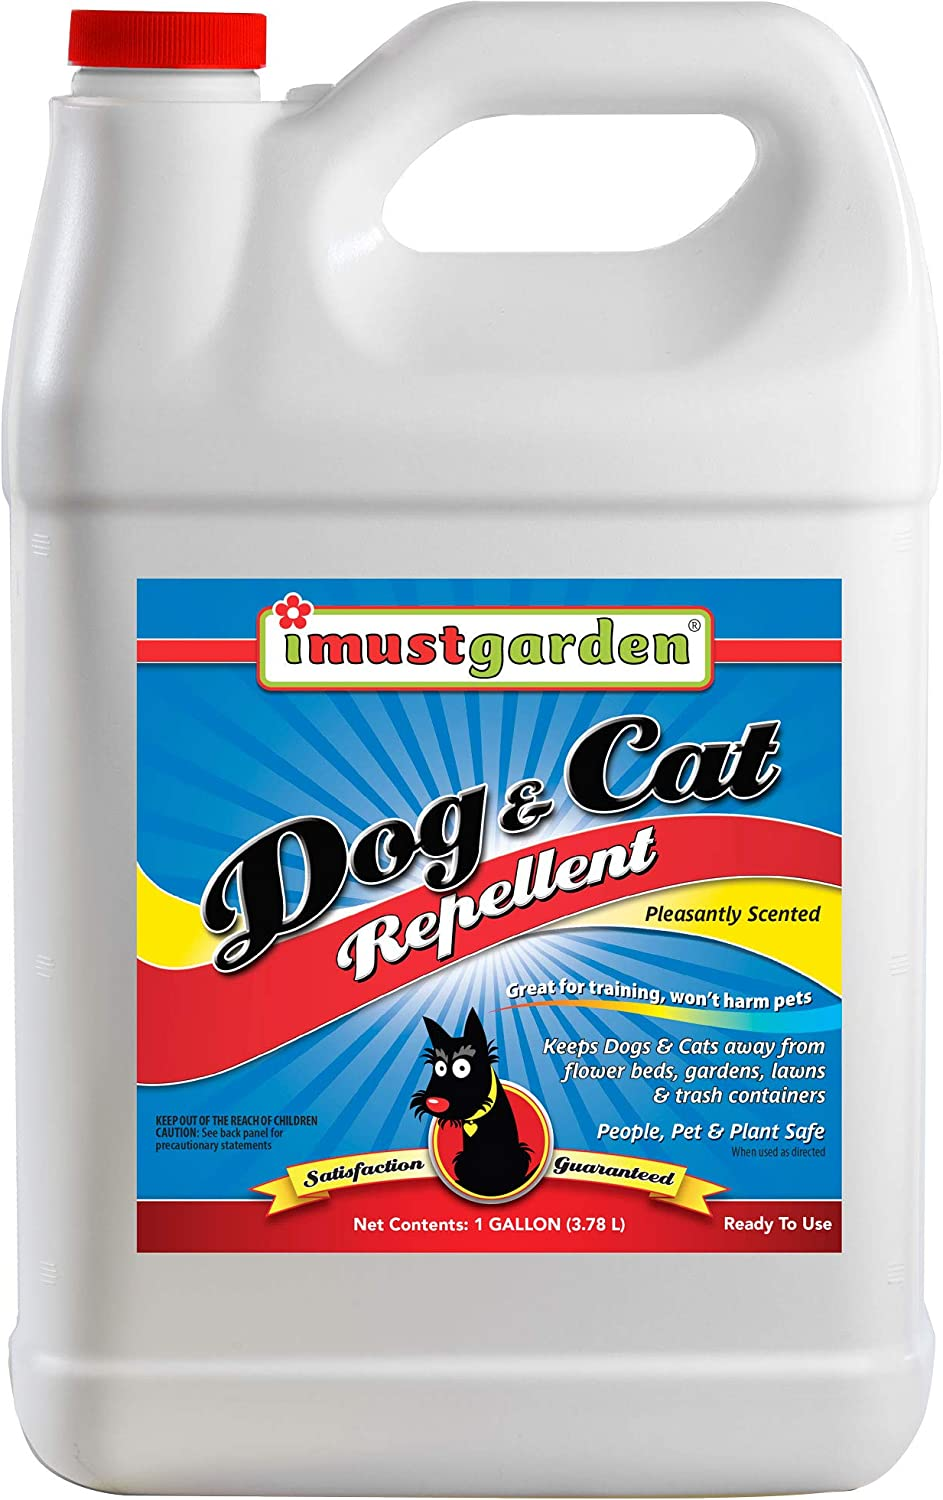 I Must Garden Dog and Cat Repellent: C Stop All to online shop SEAL limited product Natural Spray